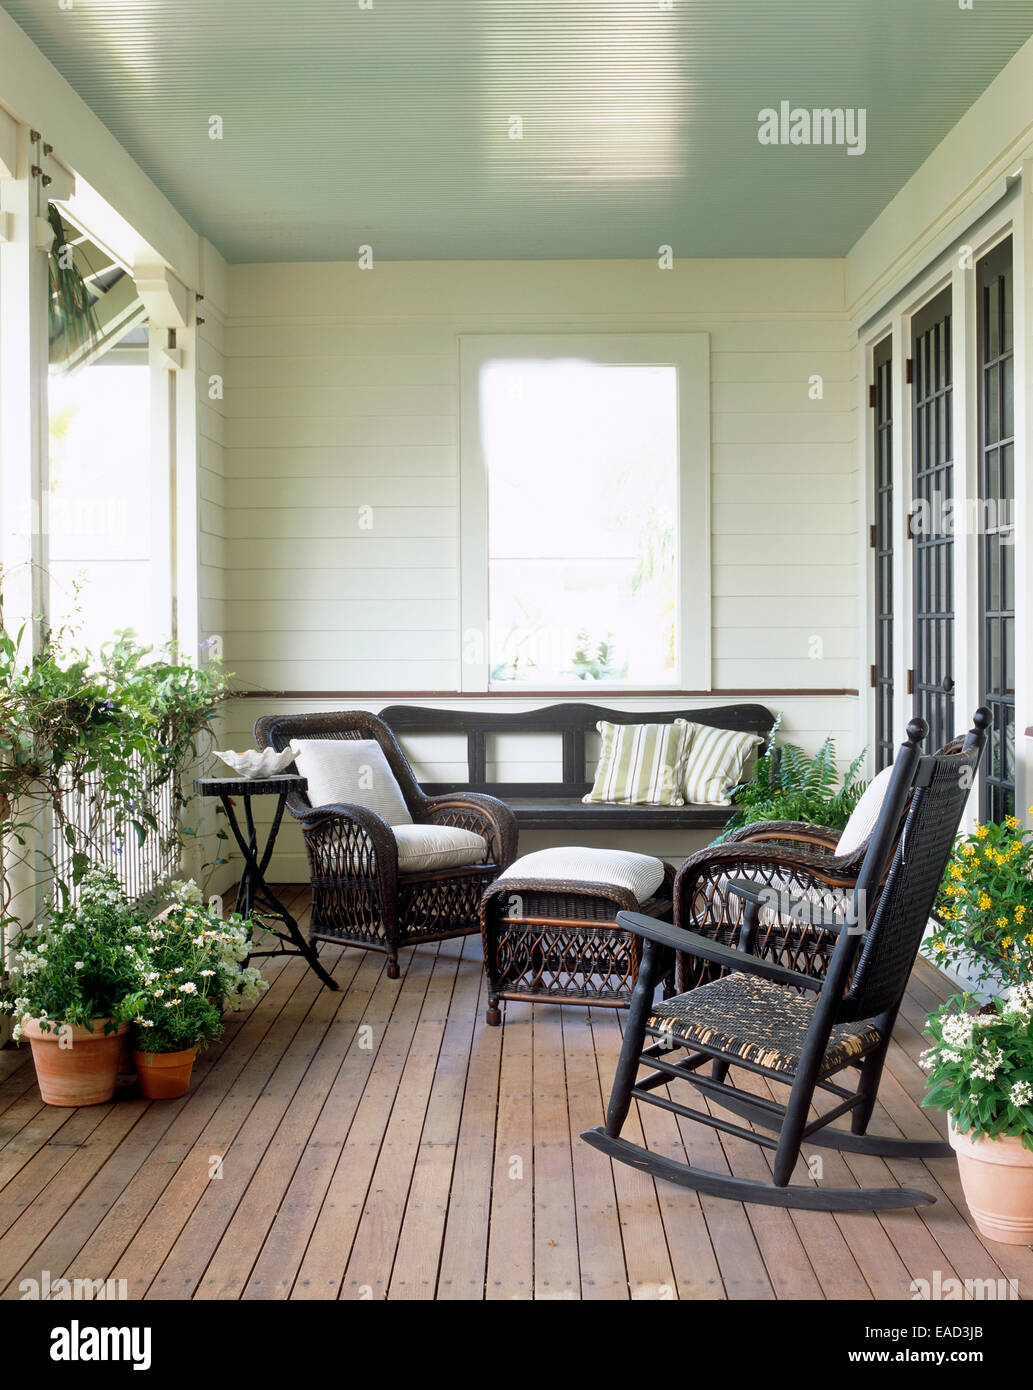 summer porch with flowers and wicker furniture - Stock Image